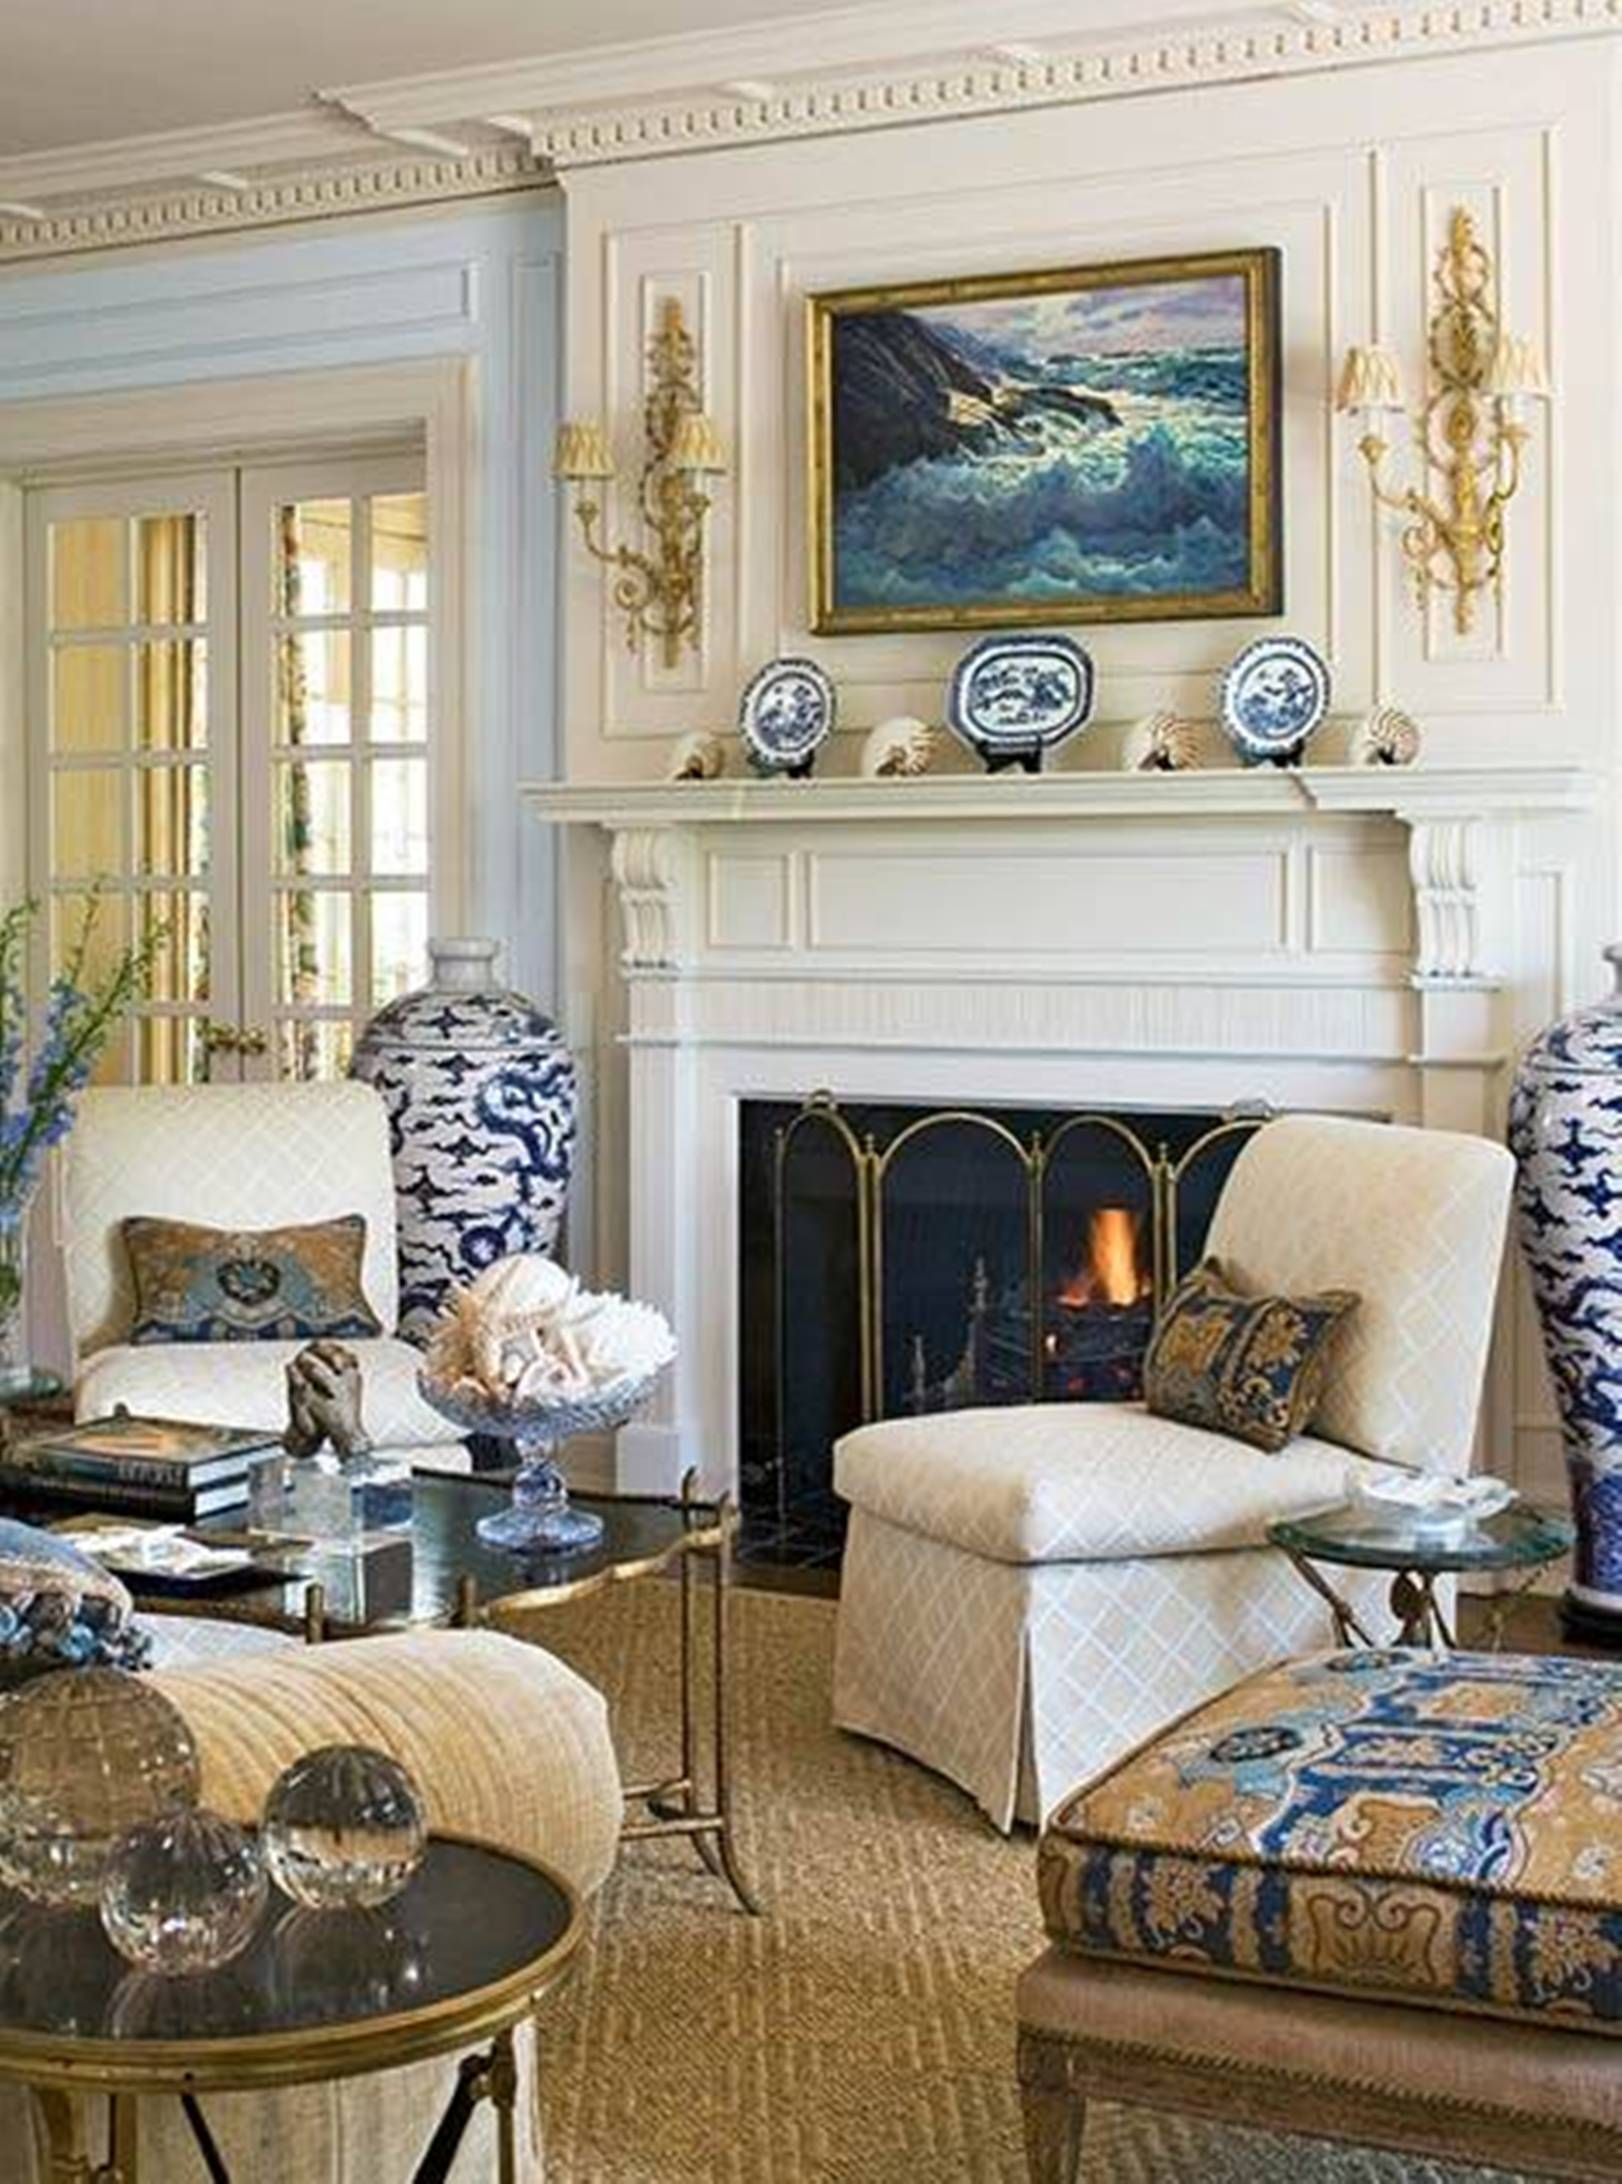 Traditional living room designs ideas decorating furniture also rh pinterest